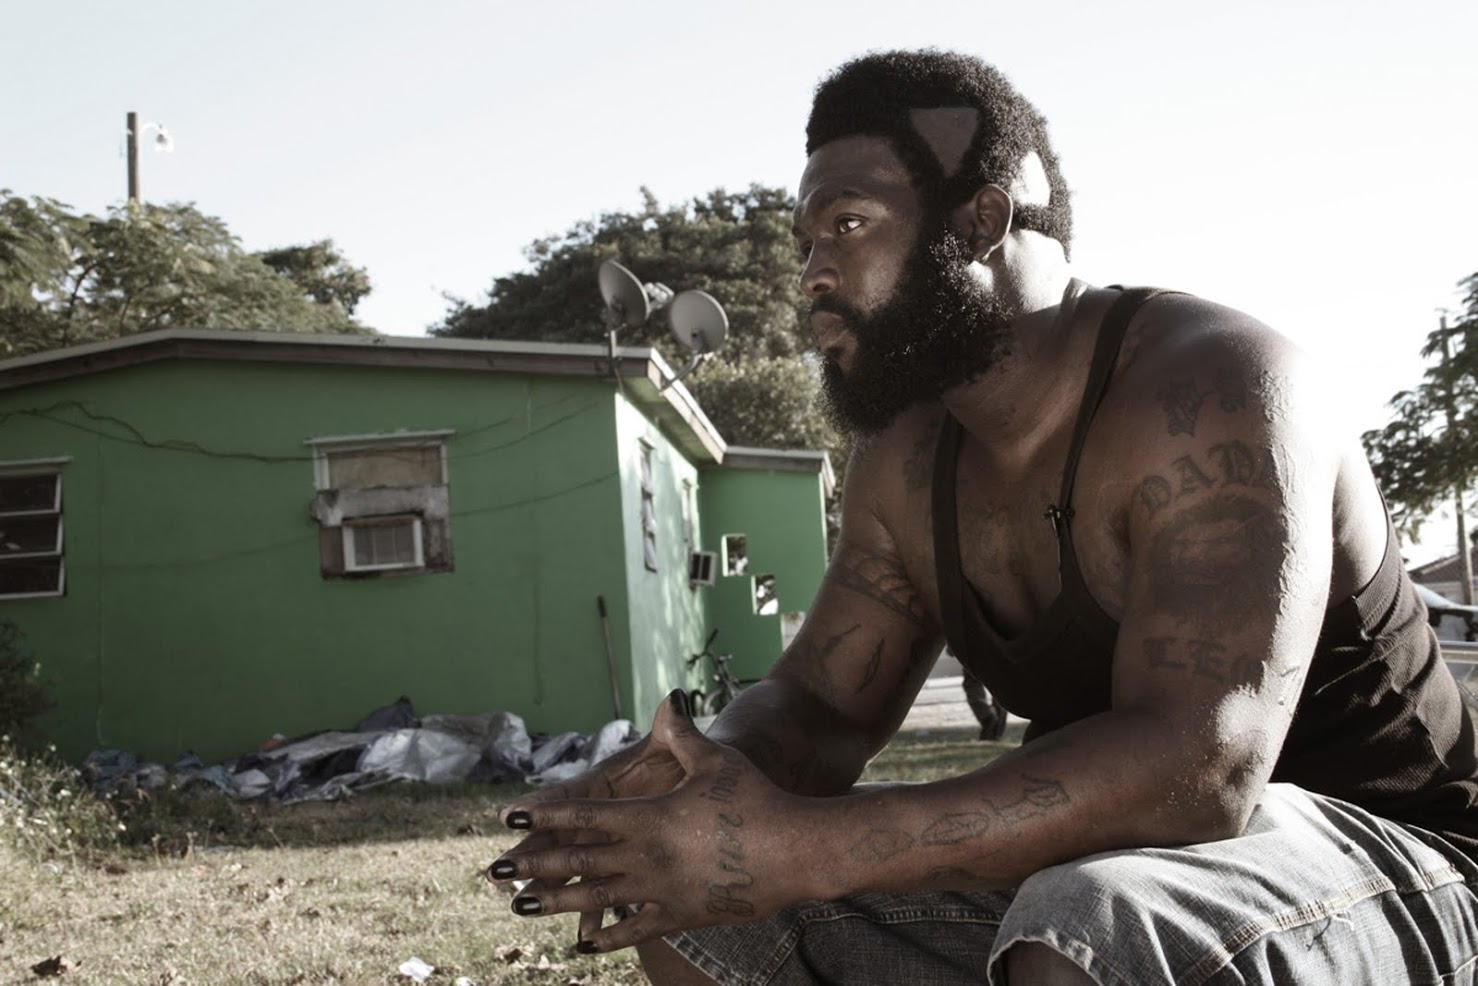 Backyard Fighting Videos dawg fight' director pulls no punches with his brutal new film